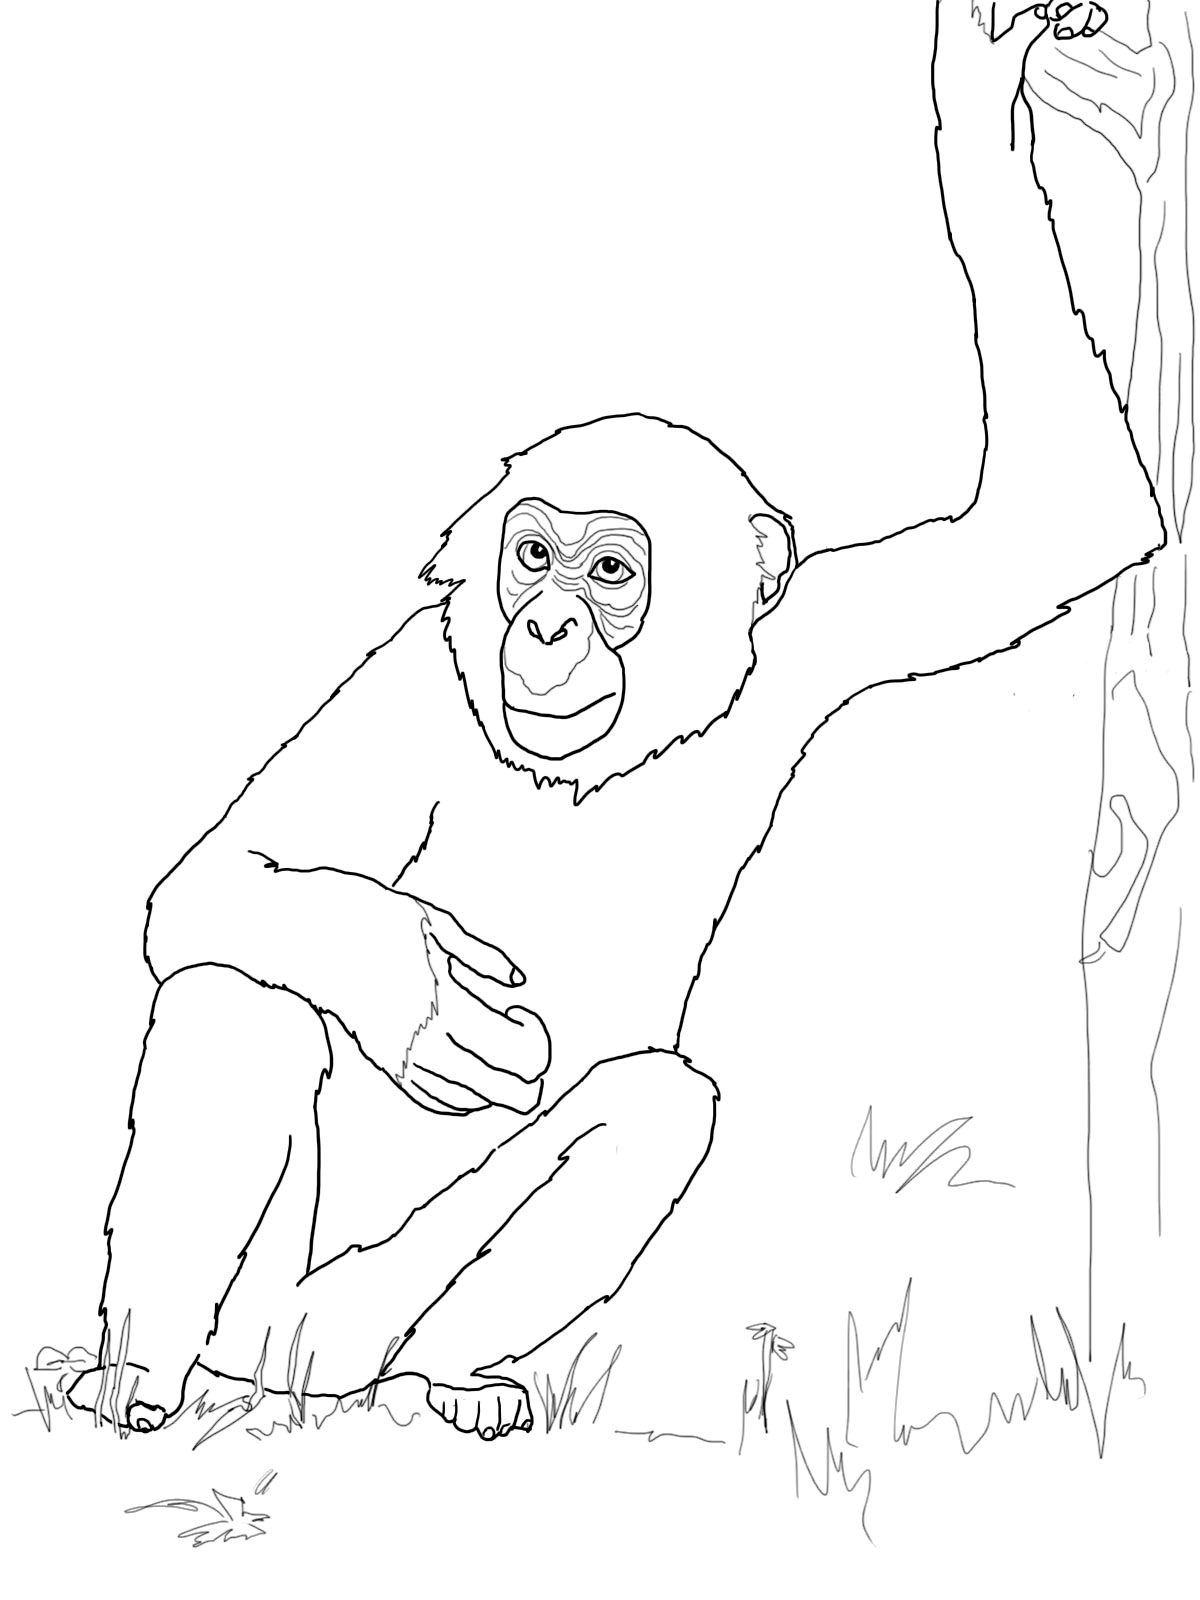 chimpanzee pictures to print free printable chimpanzee coloring pages for kids chimpanzee print to pictures